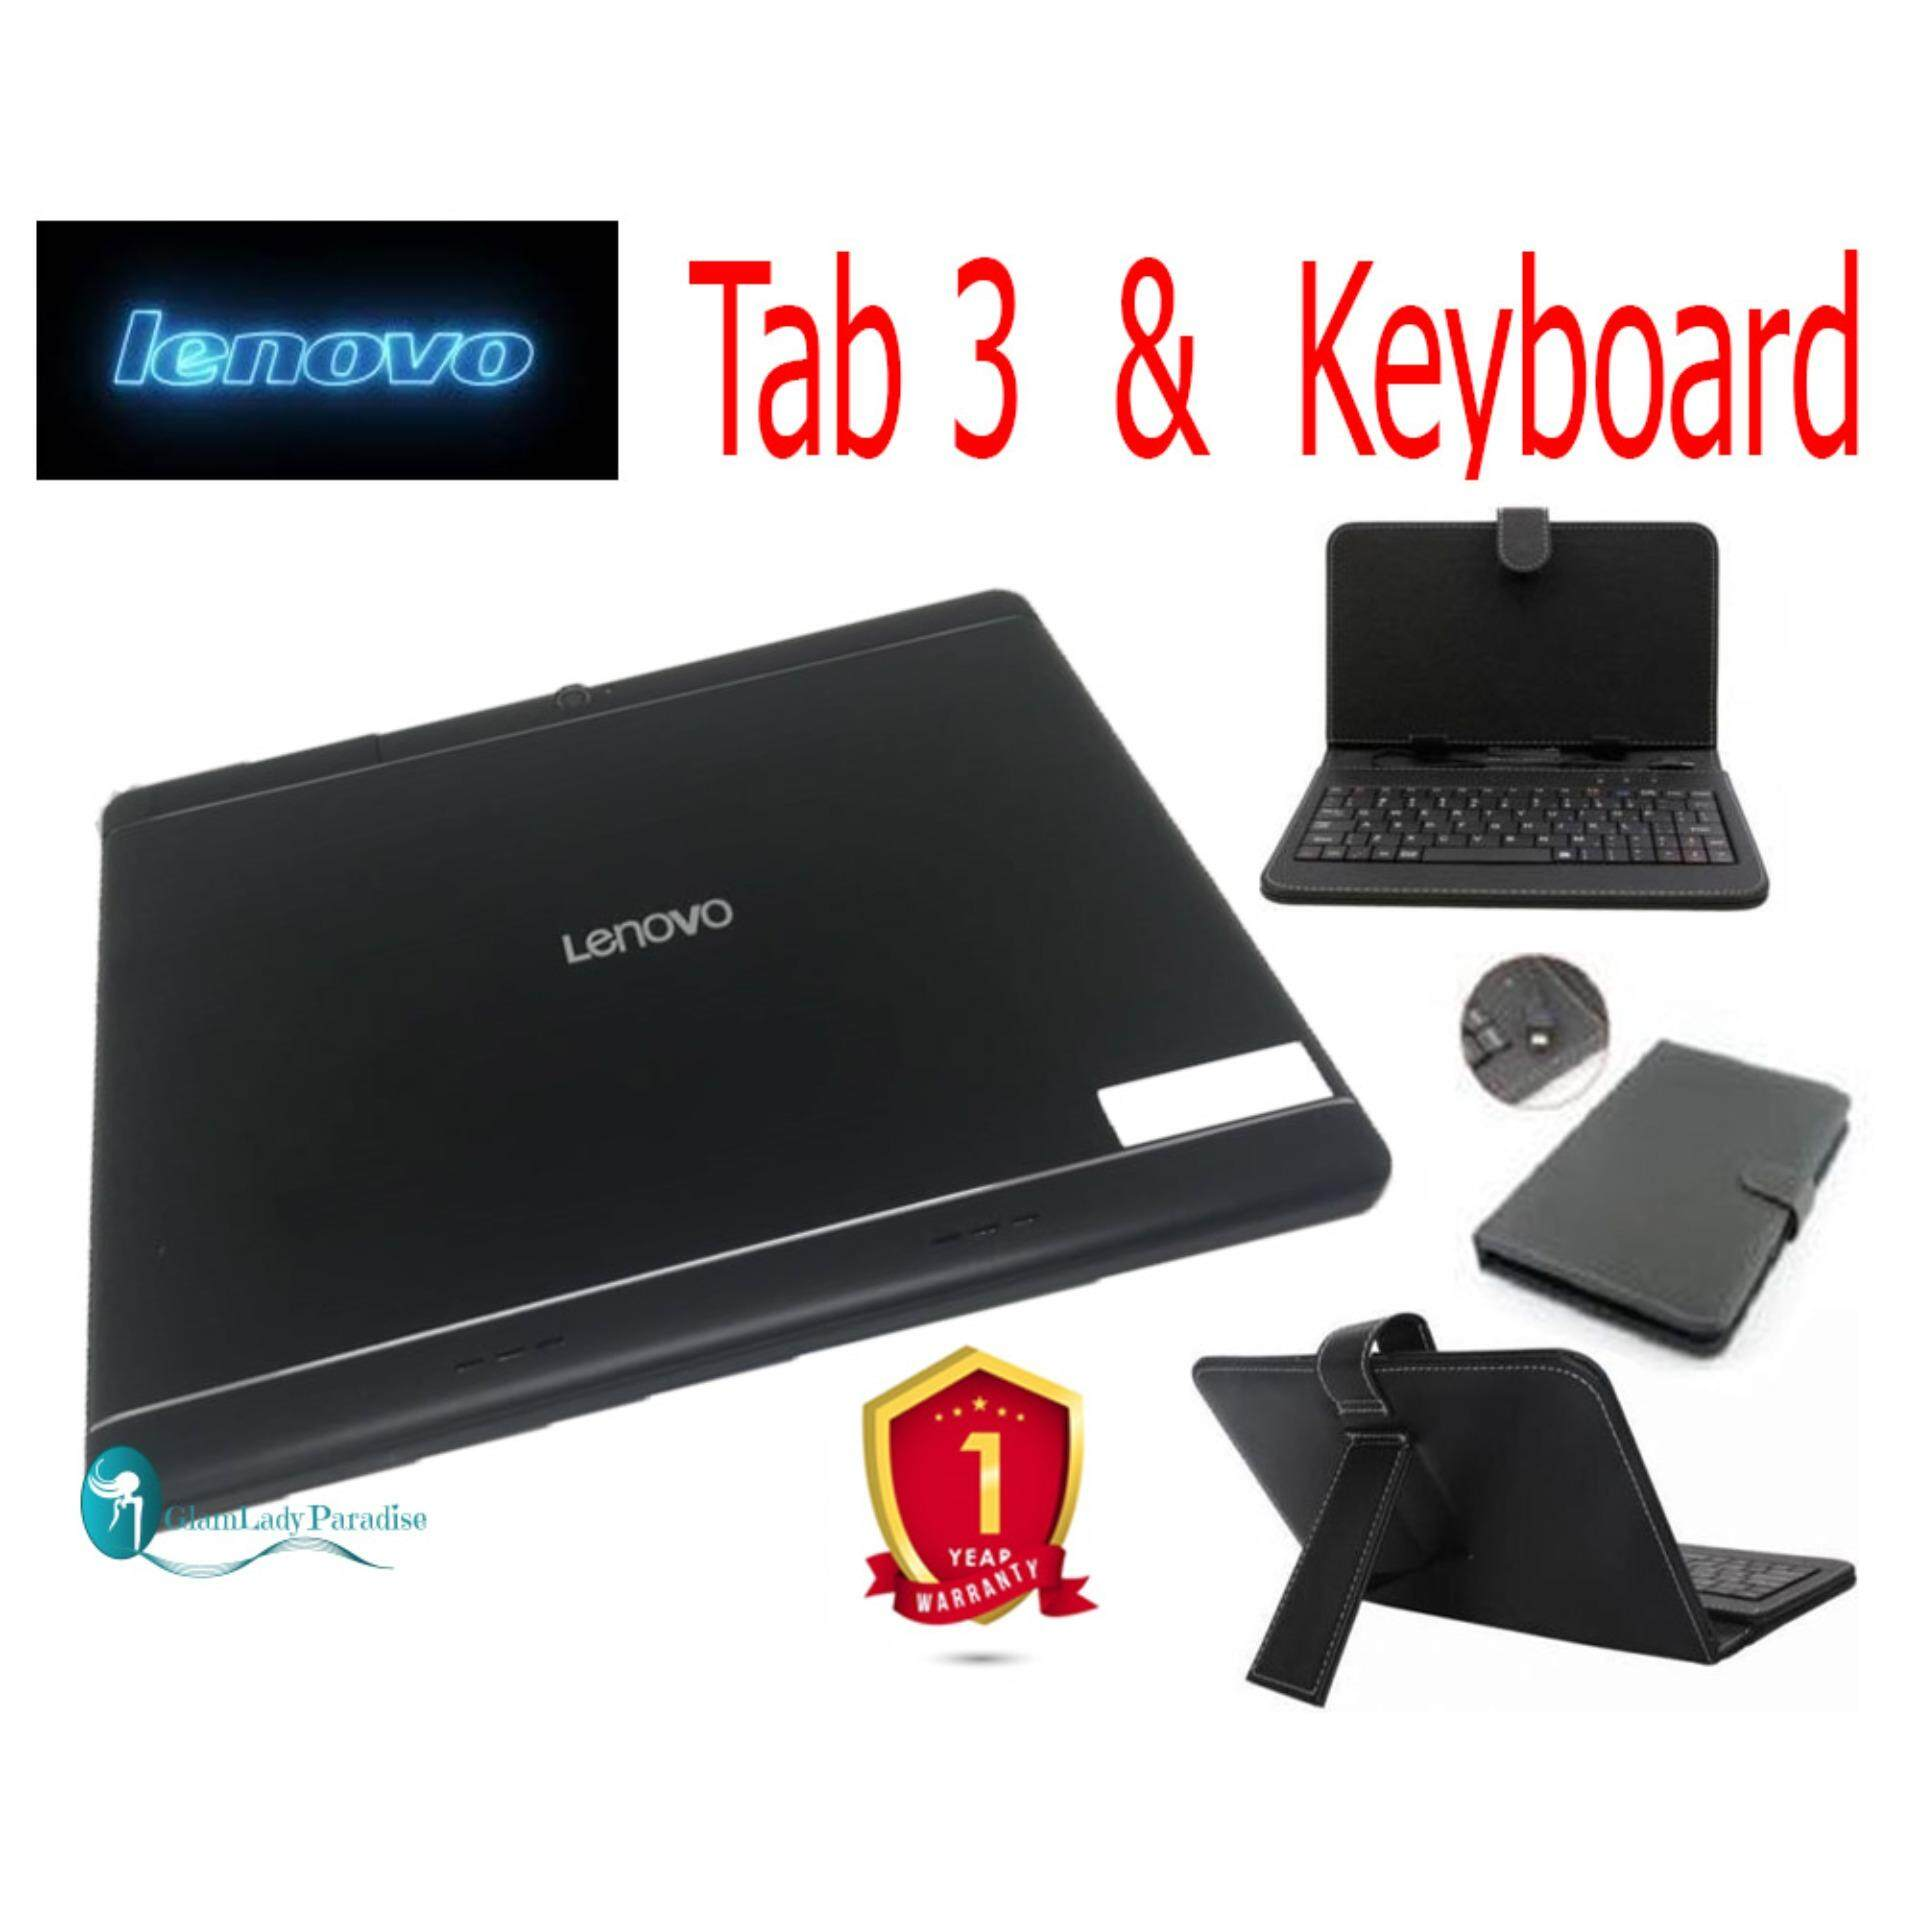 Lenovo Tablet & Accessories With Best Tab Price In Malaysia